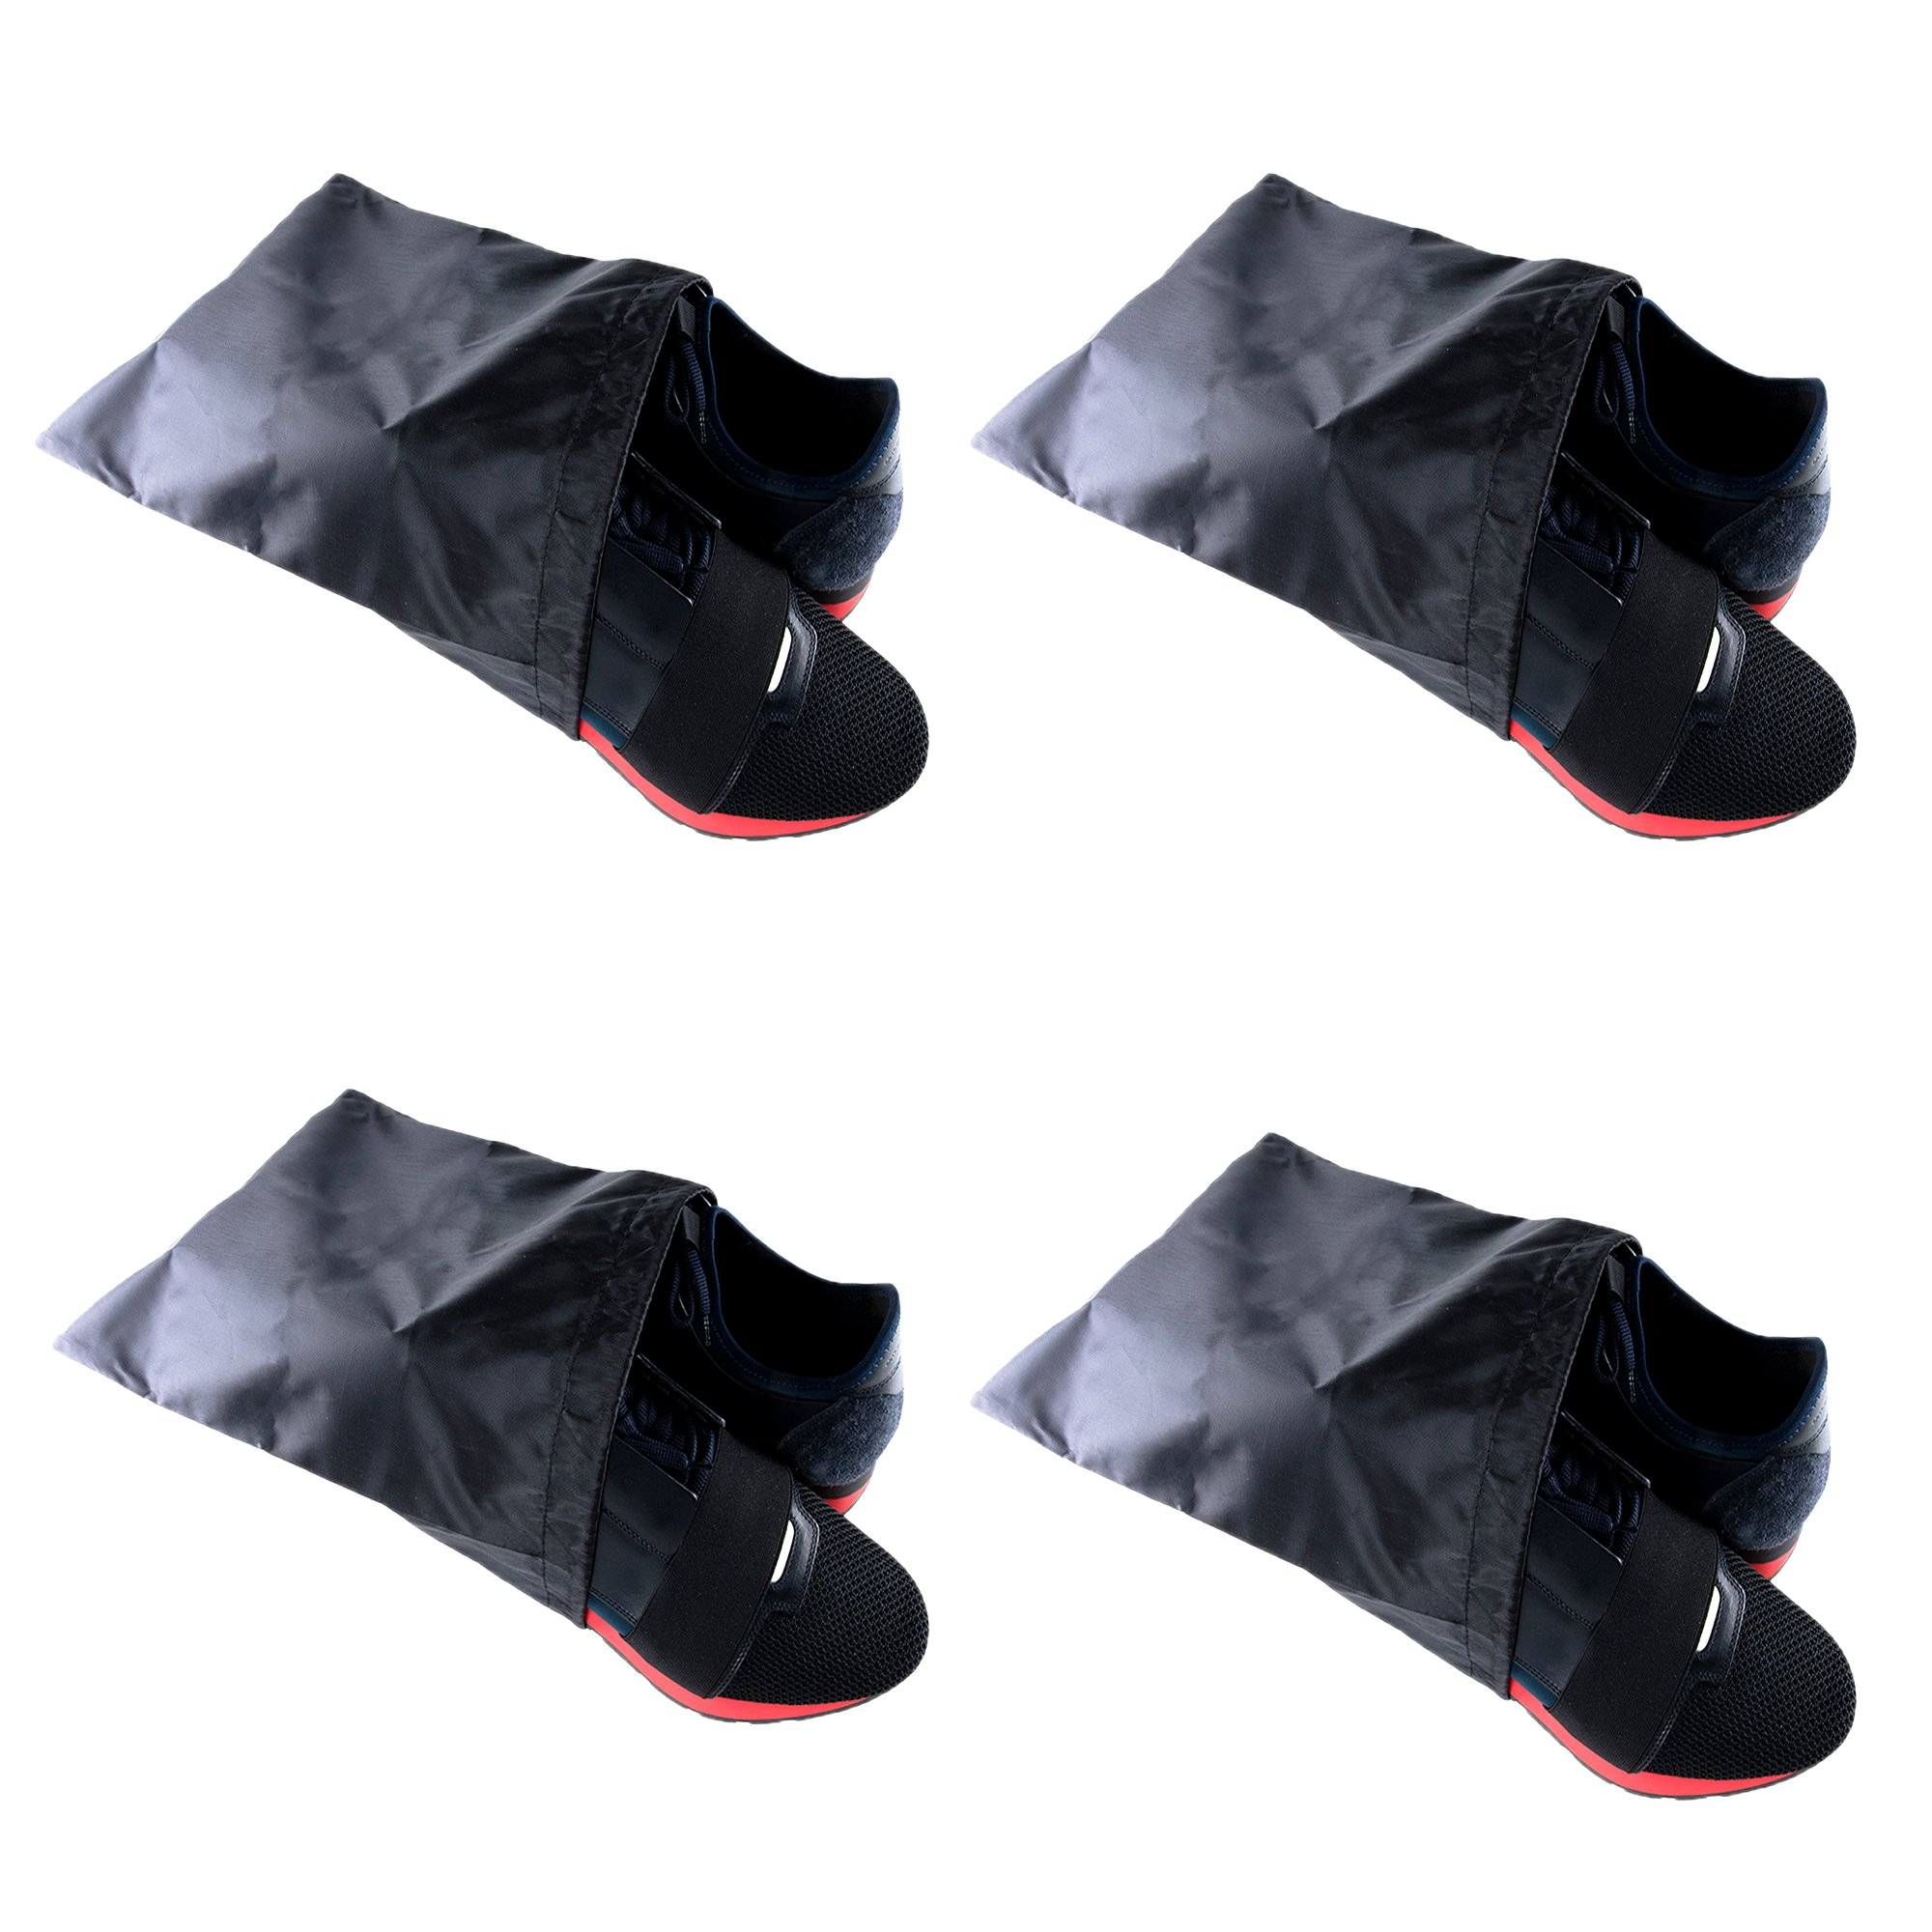 Waterproof Nylon Dust-Proof Travel Bags with Drawstring Closure for Shoes Footwear Protection, Space Saving, Closet Home Organization Gift 15'' x 12'' (3 Pack)